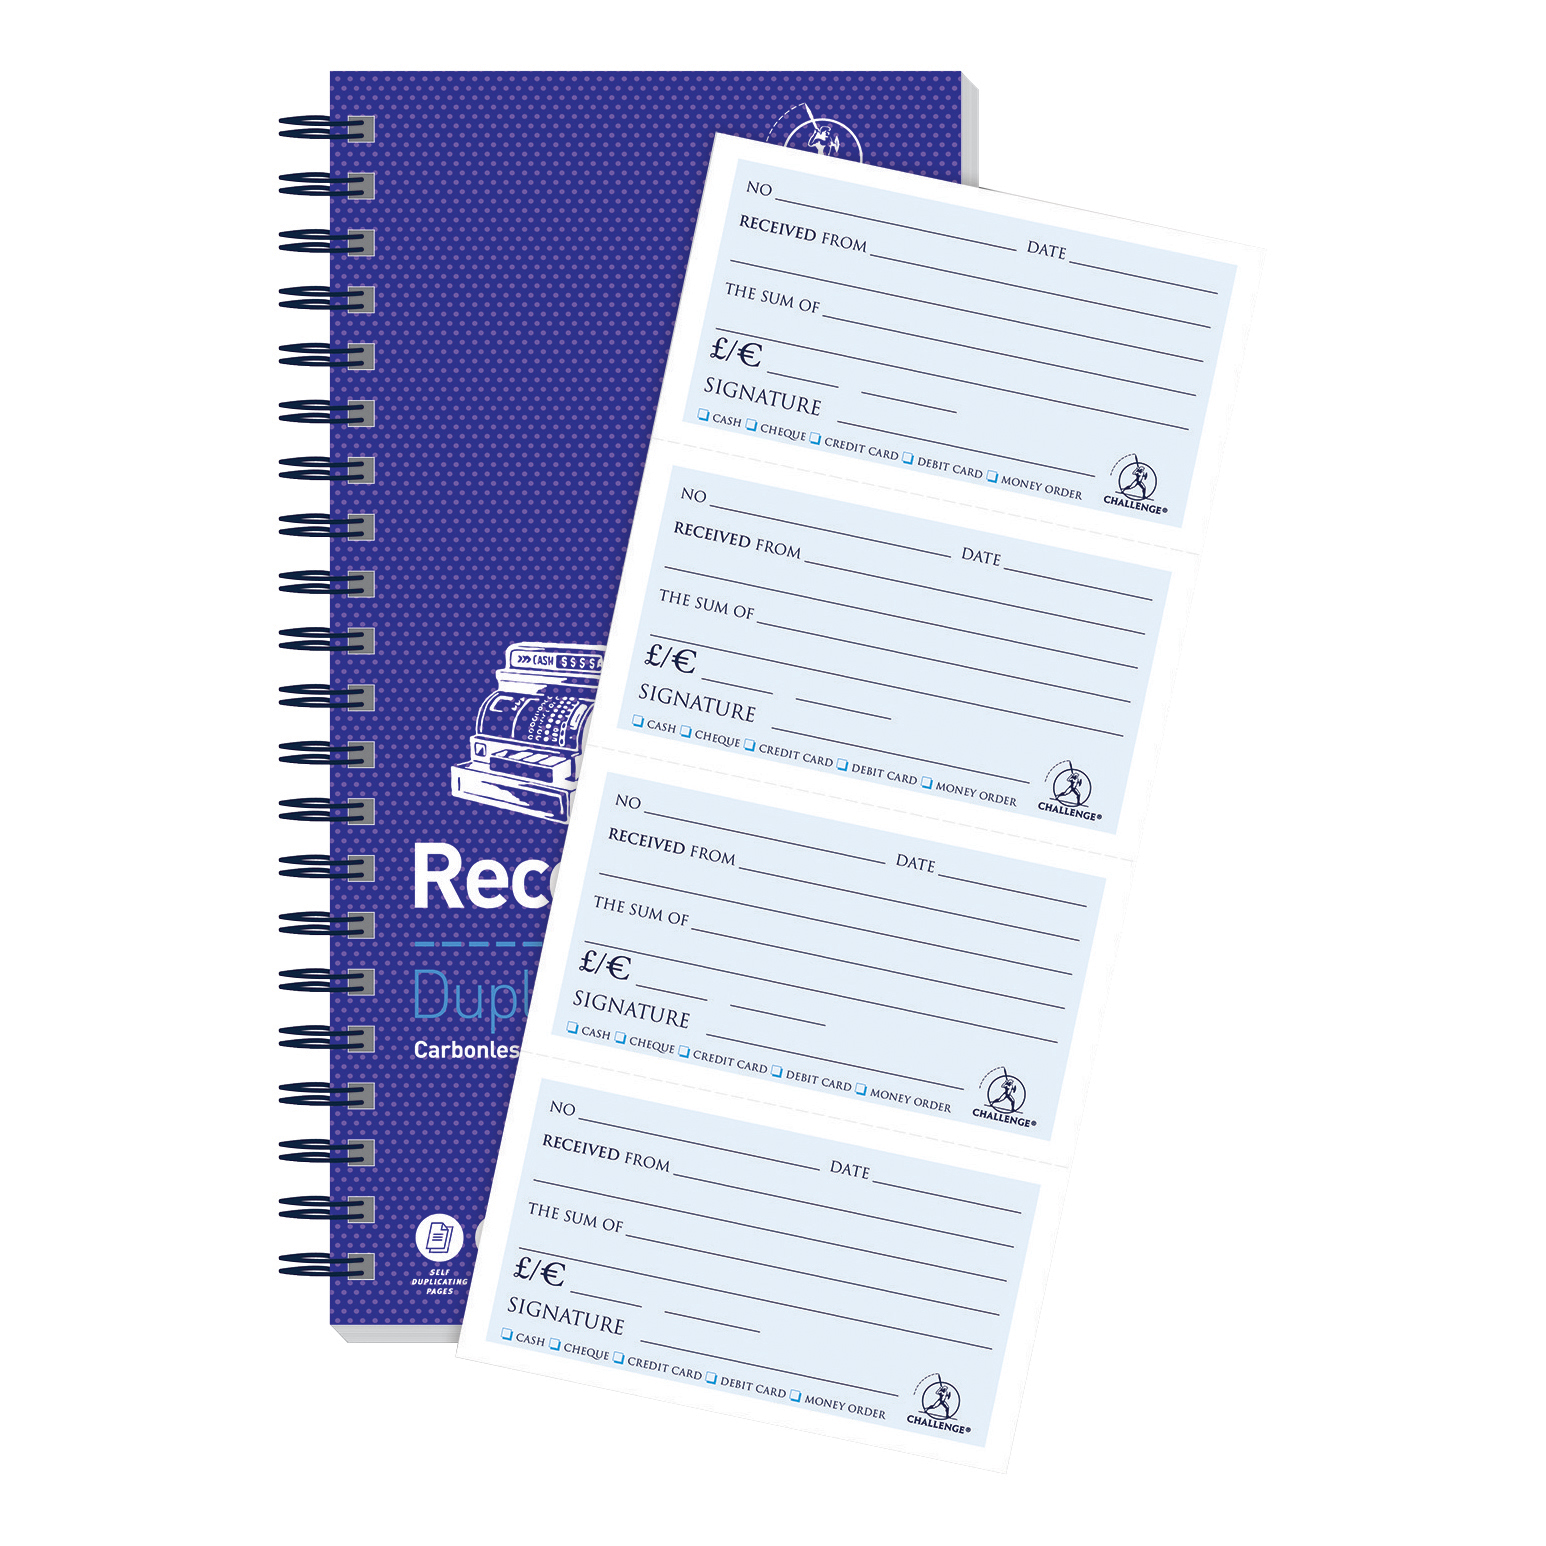 Duplicate Challenge Duplicate Book Carbonless Receipt Book Wirebound 4 Sets a Page 200 Sets 280x141mm Ref 100080056